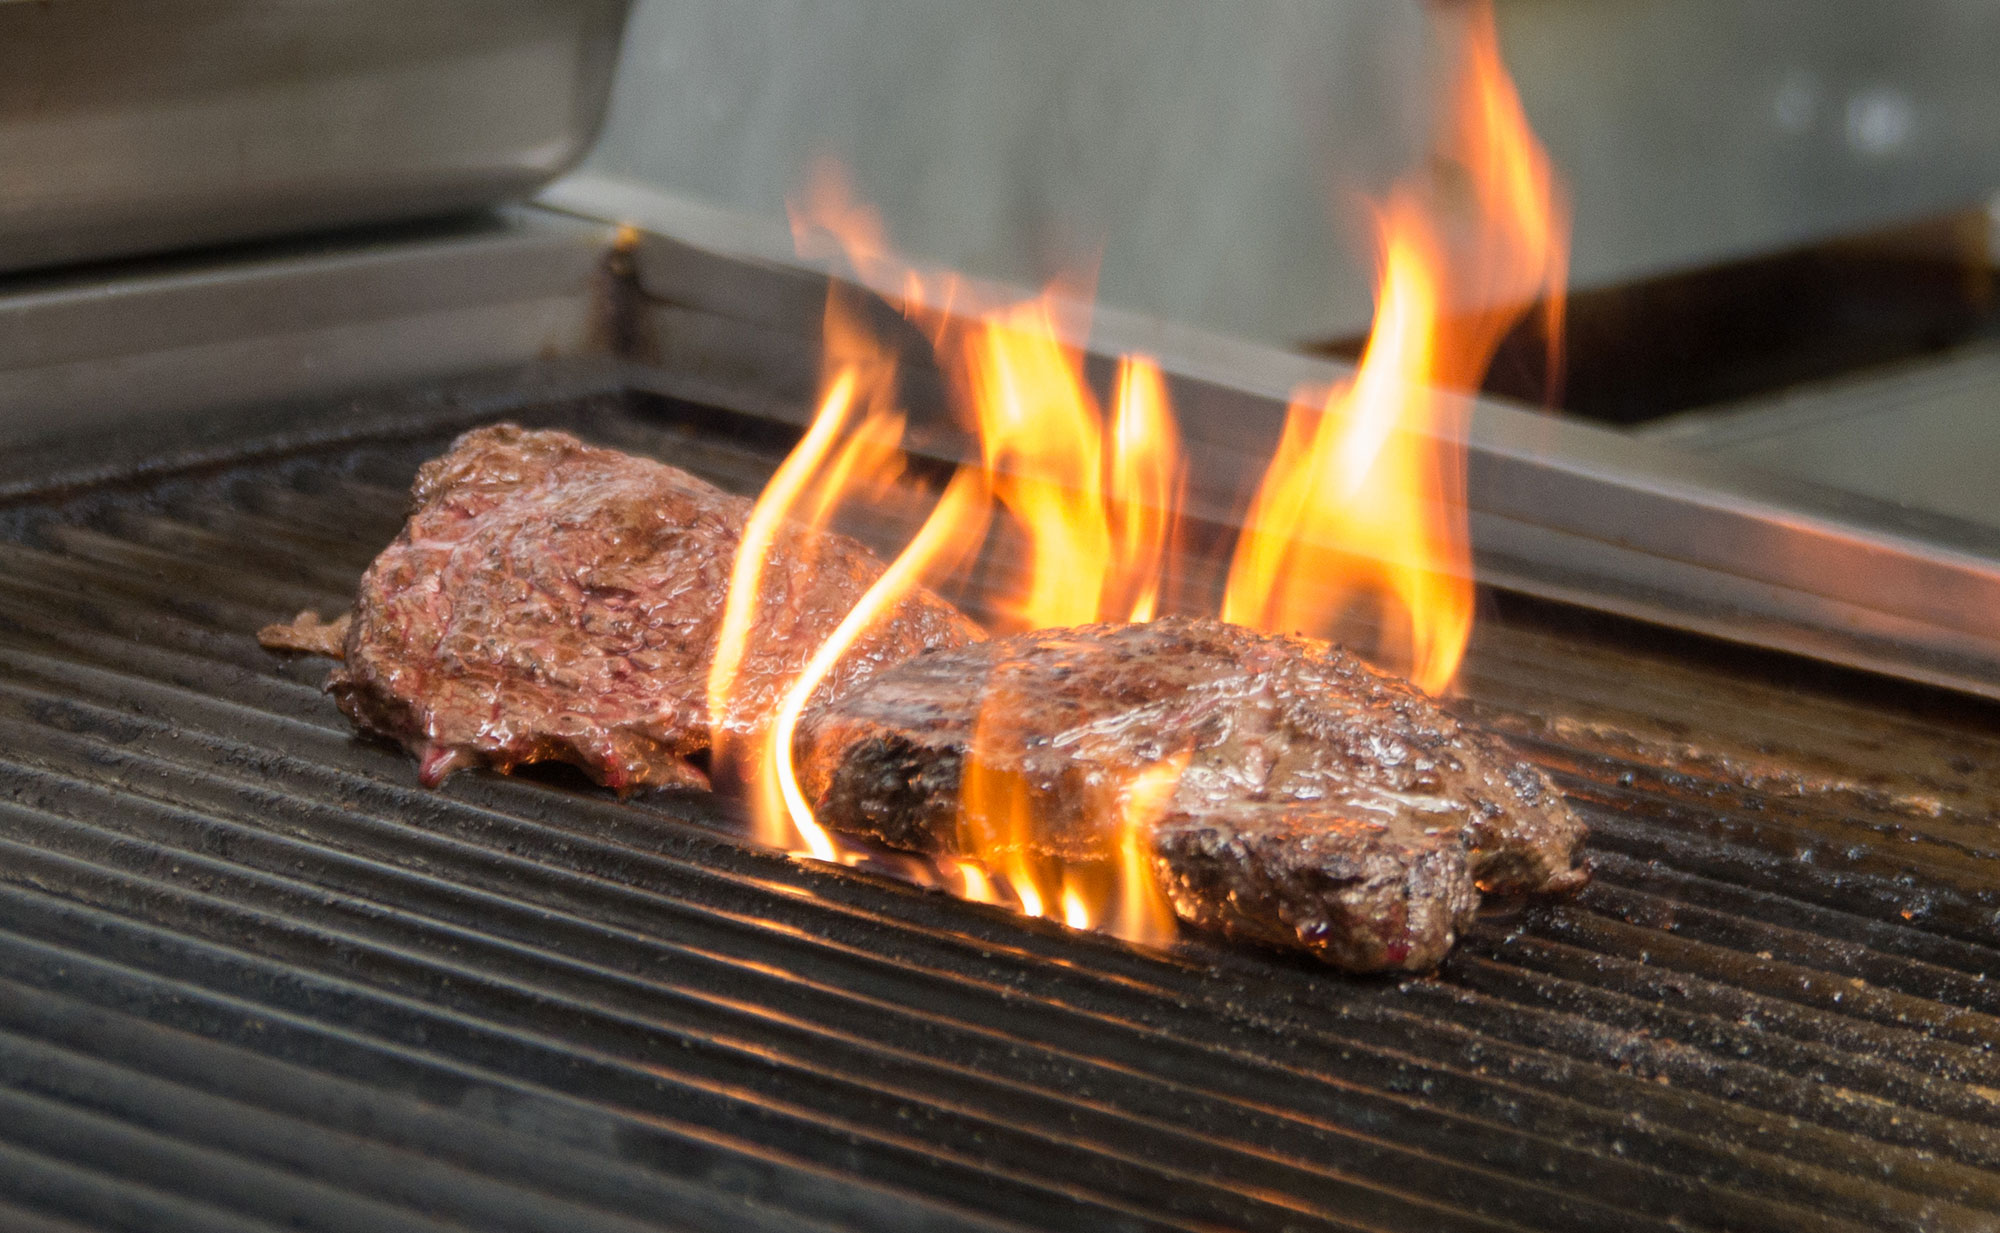 Steaks on the grill - Castle Hill Supper Club - restaurant and banquet facility